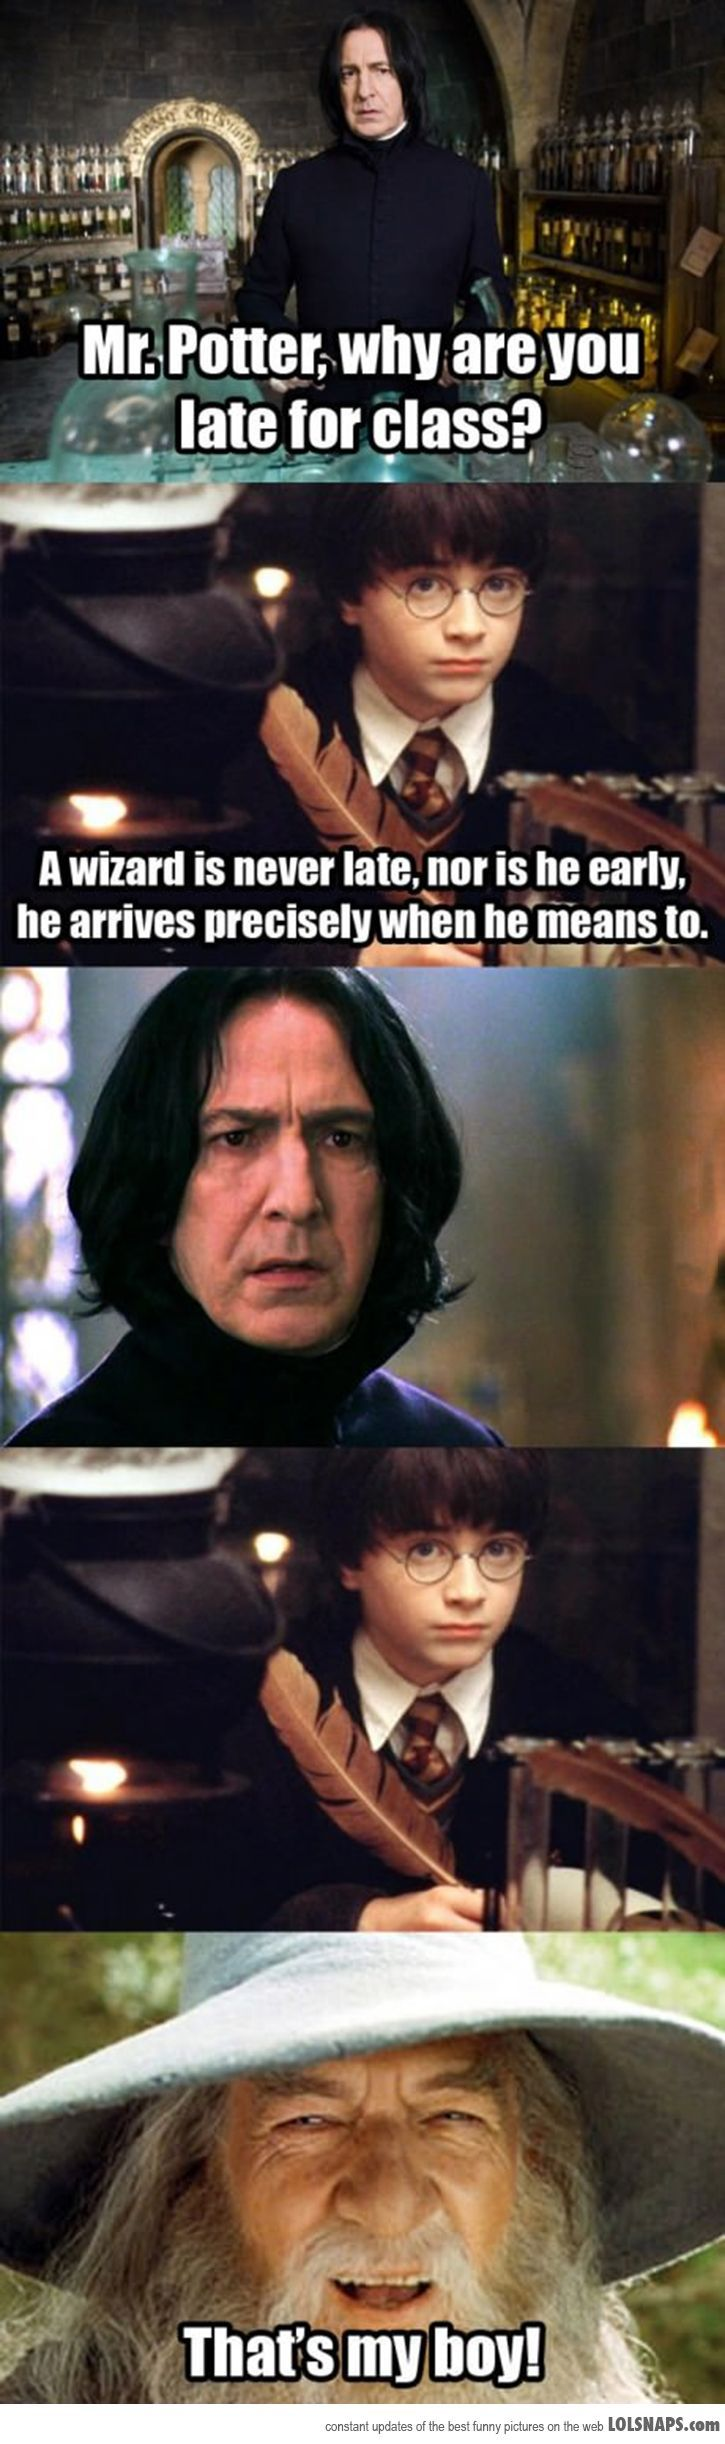 Wise Words, Mr. Potter